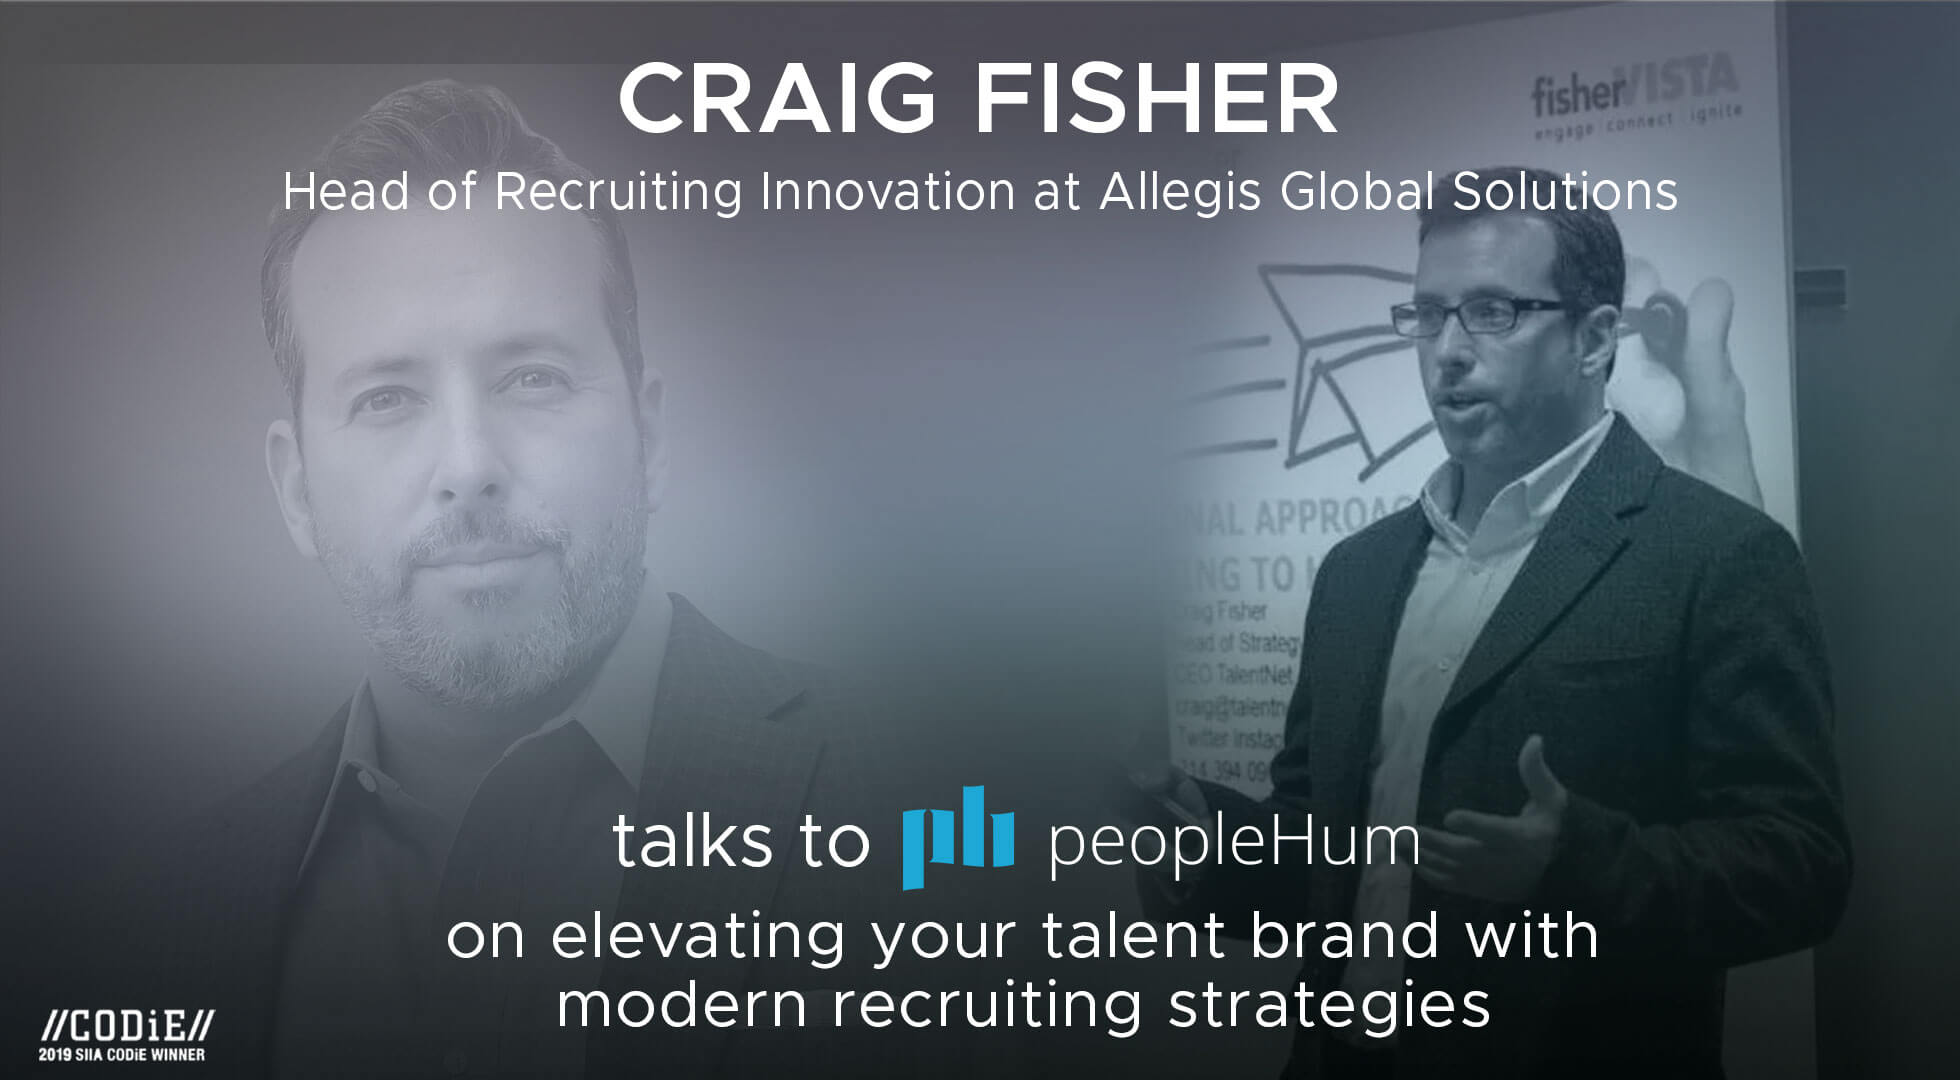 Elevating your talent brand with modern recruiting strategies - Craig Fisher [Interview]